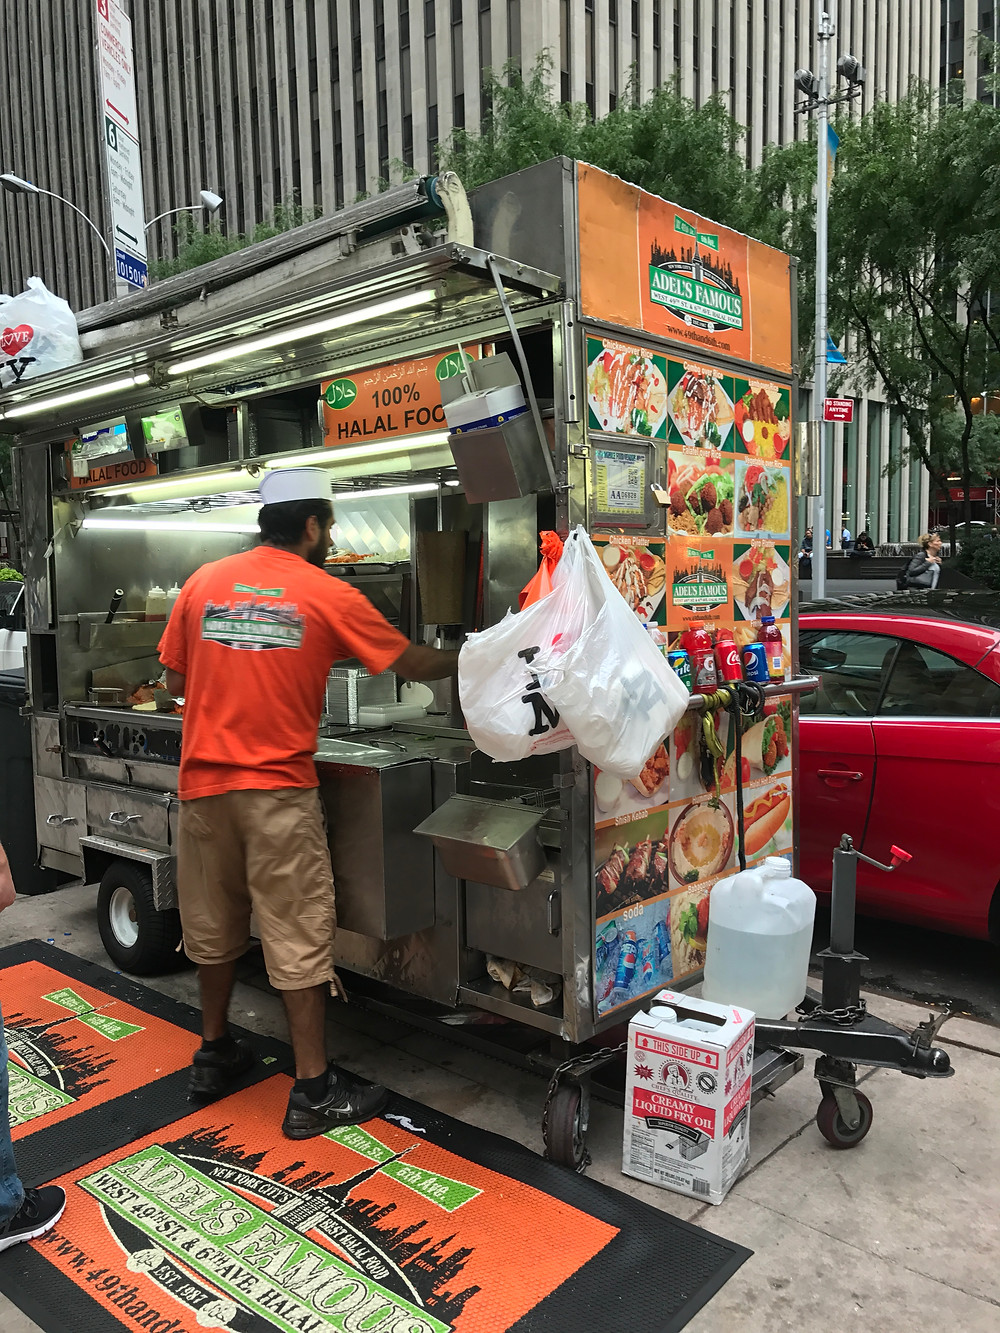 There are loads of Halal stands across NYC. This is the one we go to by Radio City.